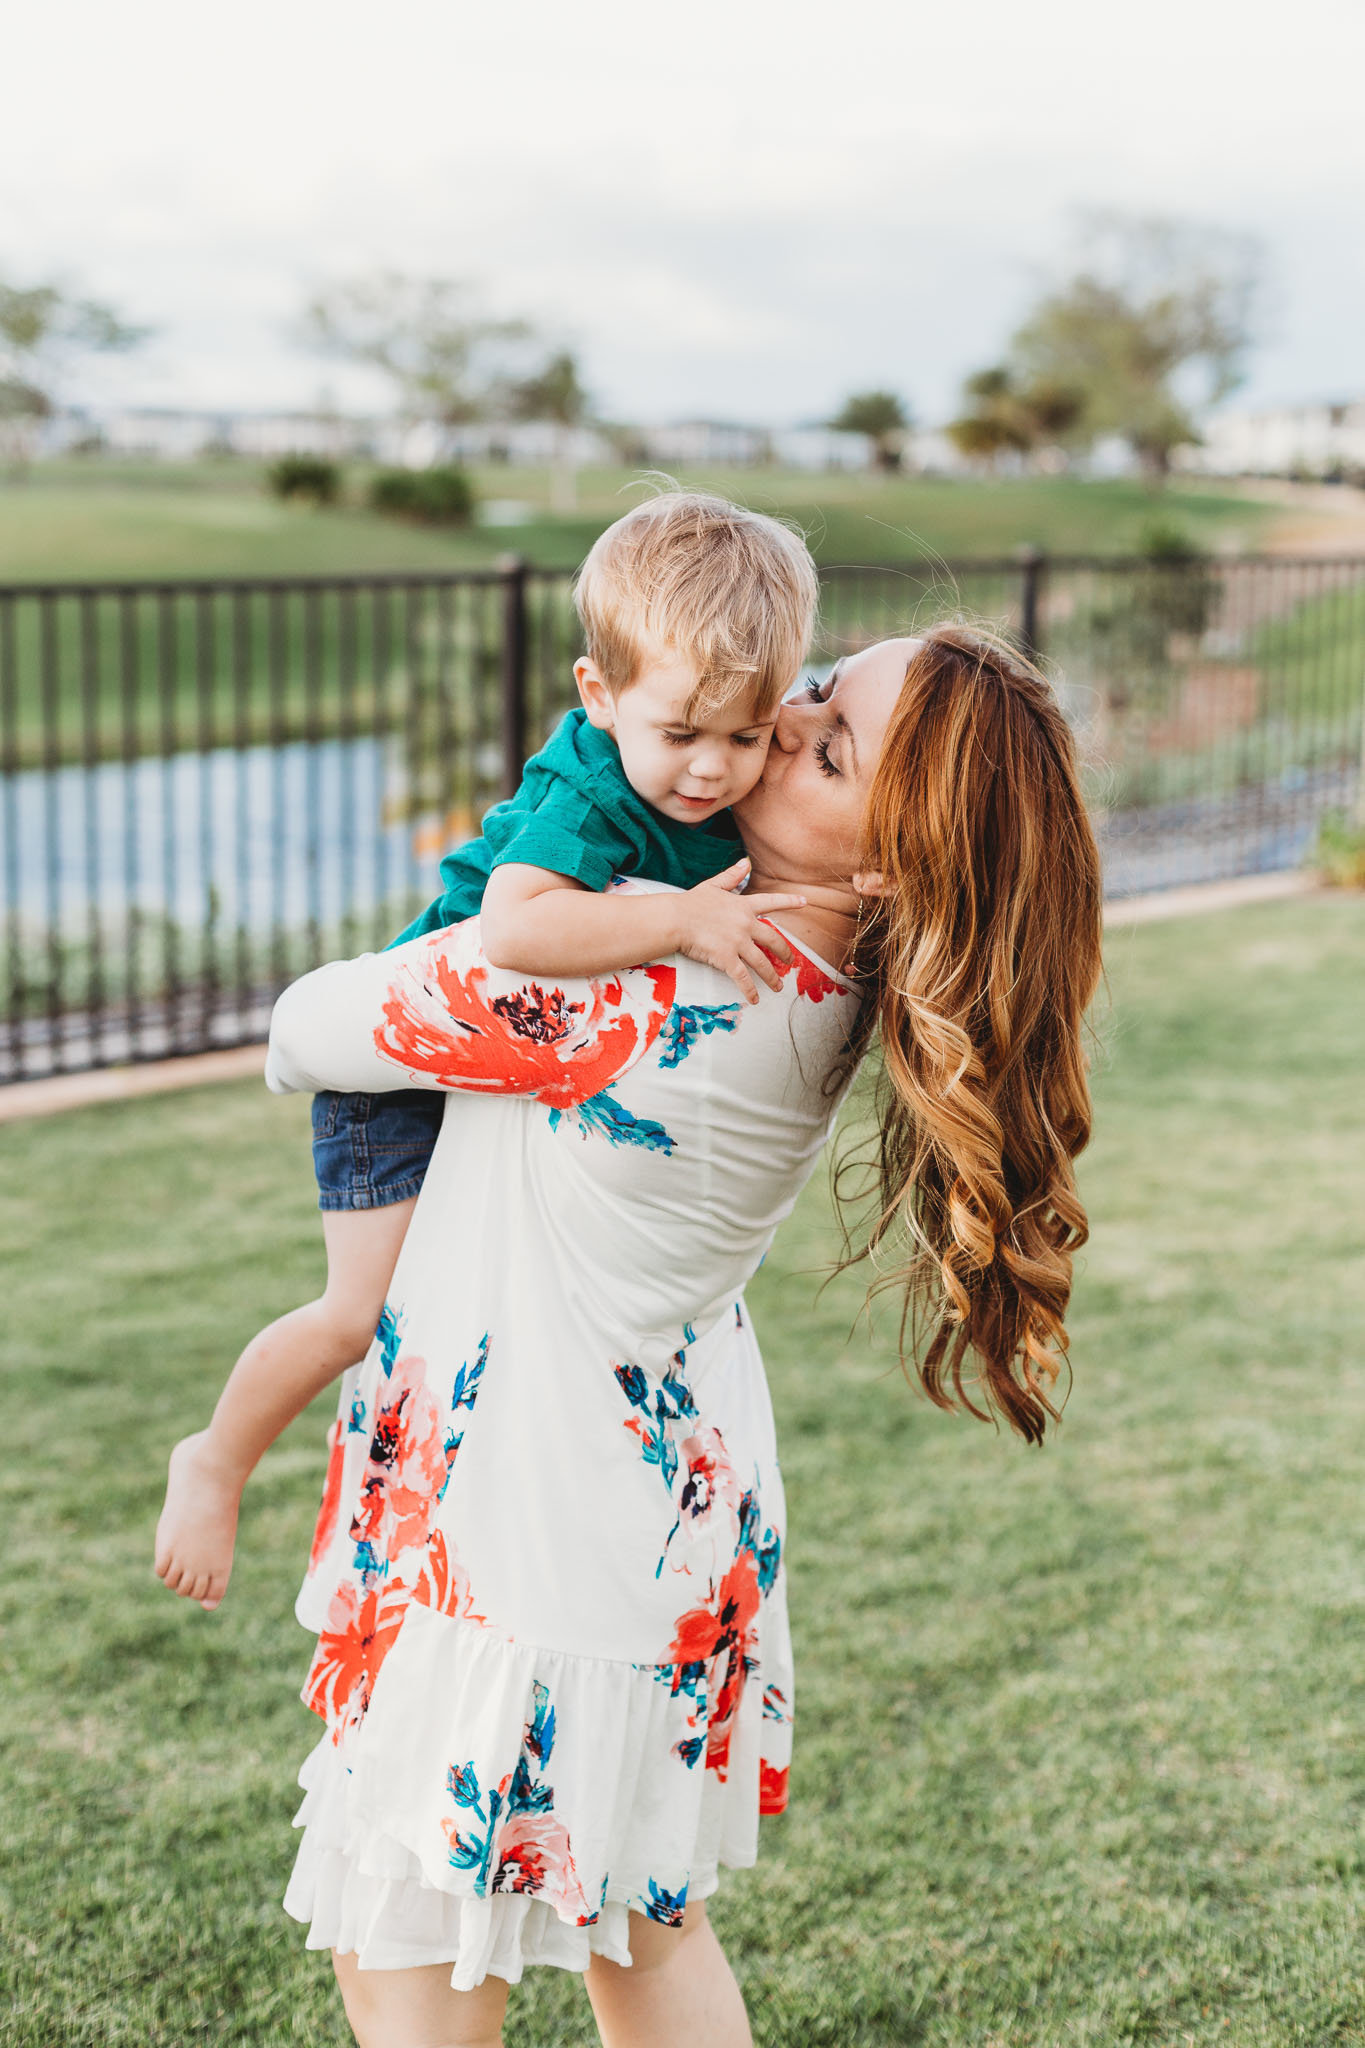 Oahu, Hawaii Lifestyle Photographer - Lifestyle Photography - Brooke Flanagan Photography - Mother kissing son on cheek